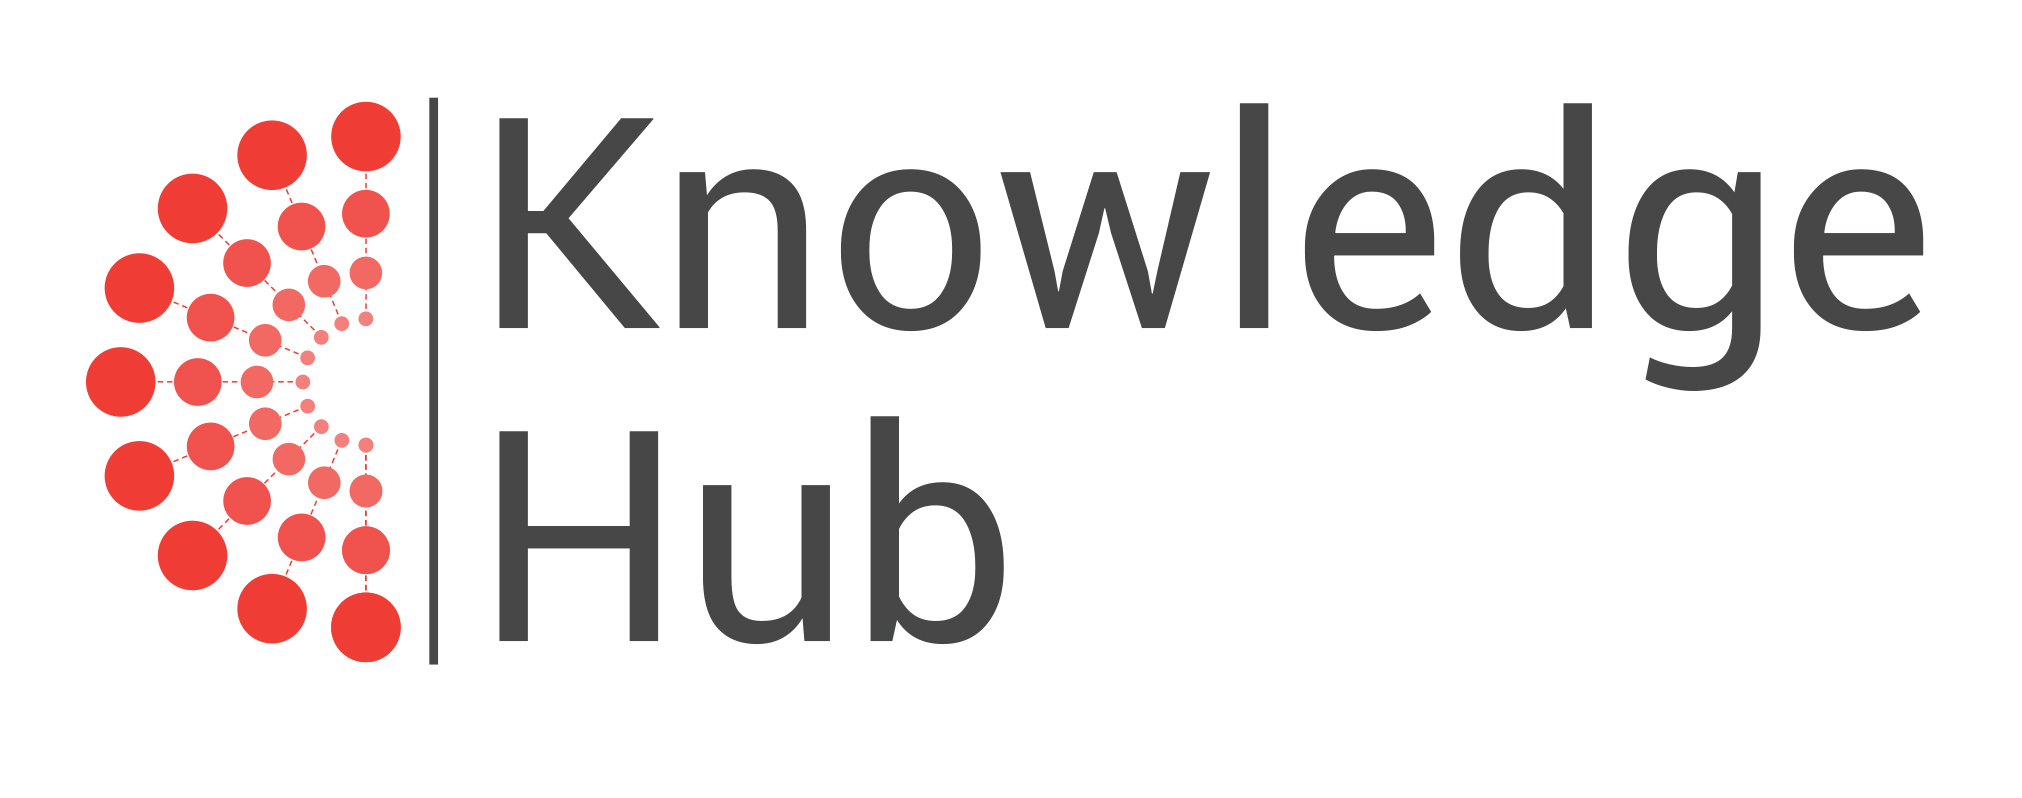 Knowledge hub alternate jpg